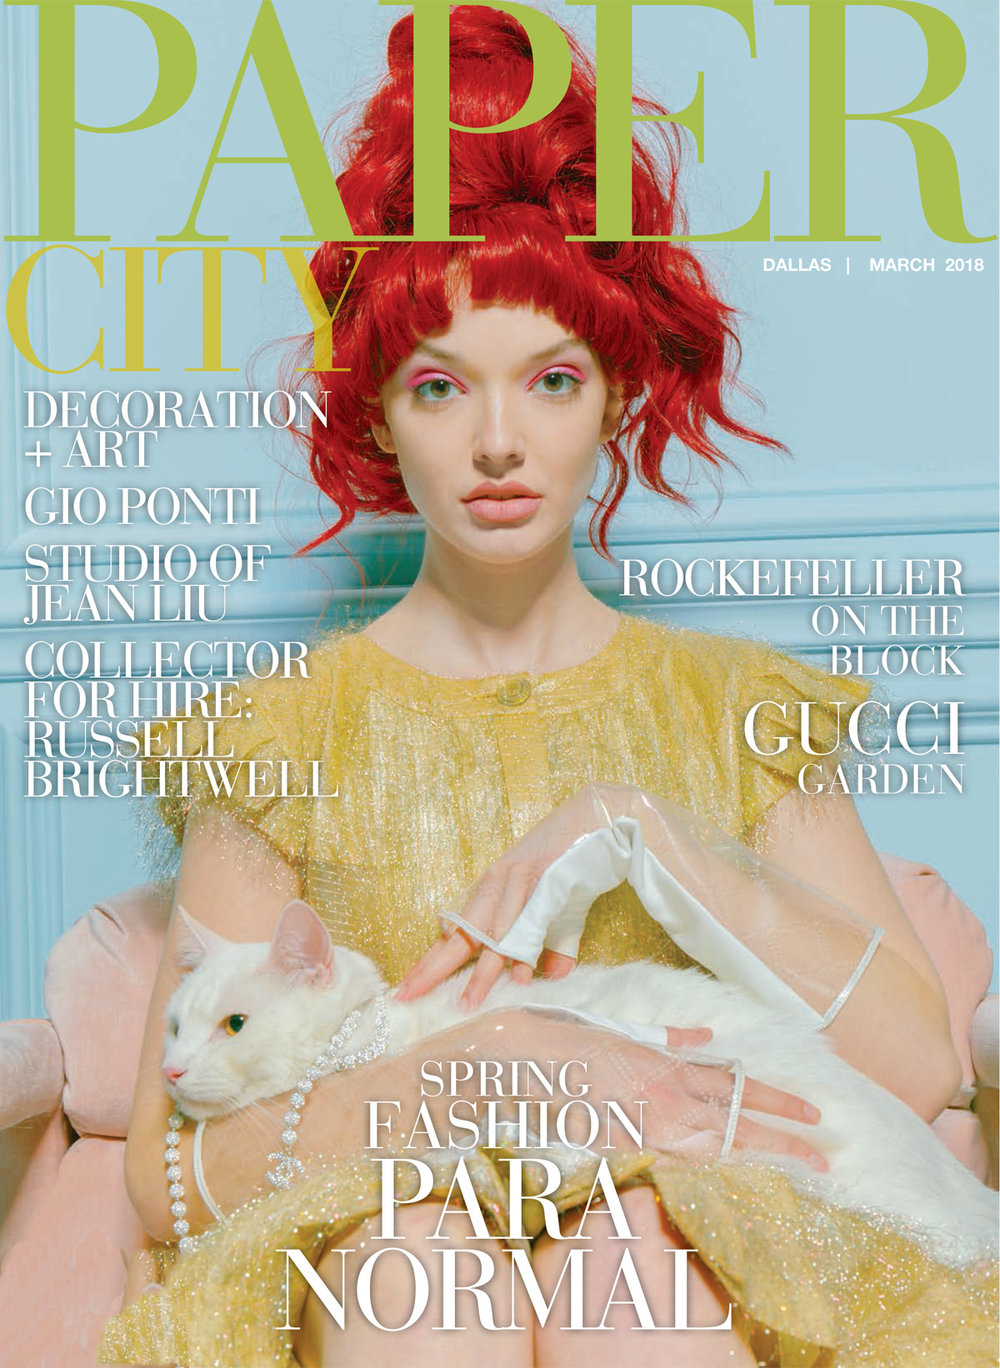 Papercity is a Dallas/Houston based publication and one of the few creative editorial opportunities in the Texas market.